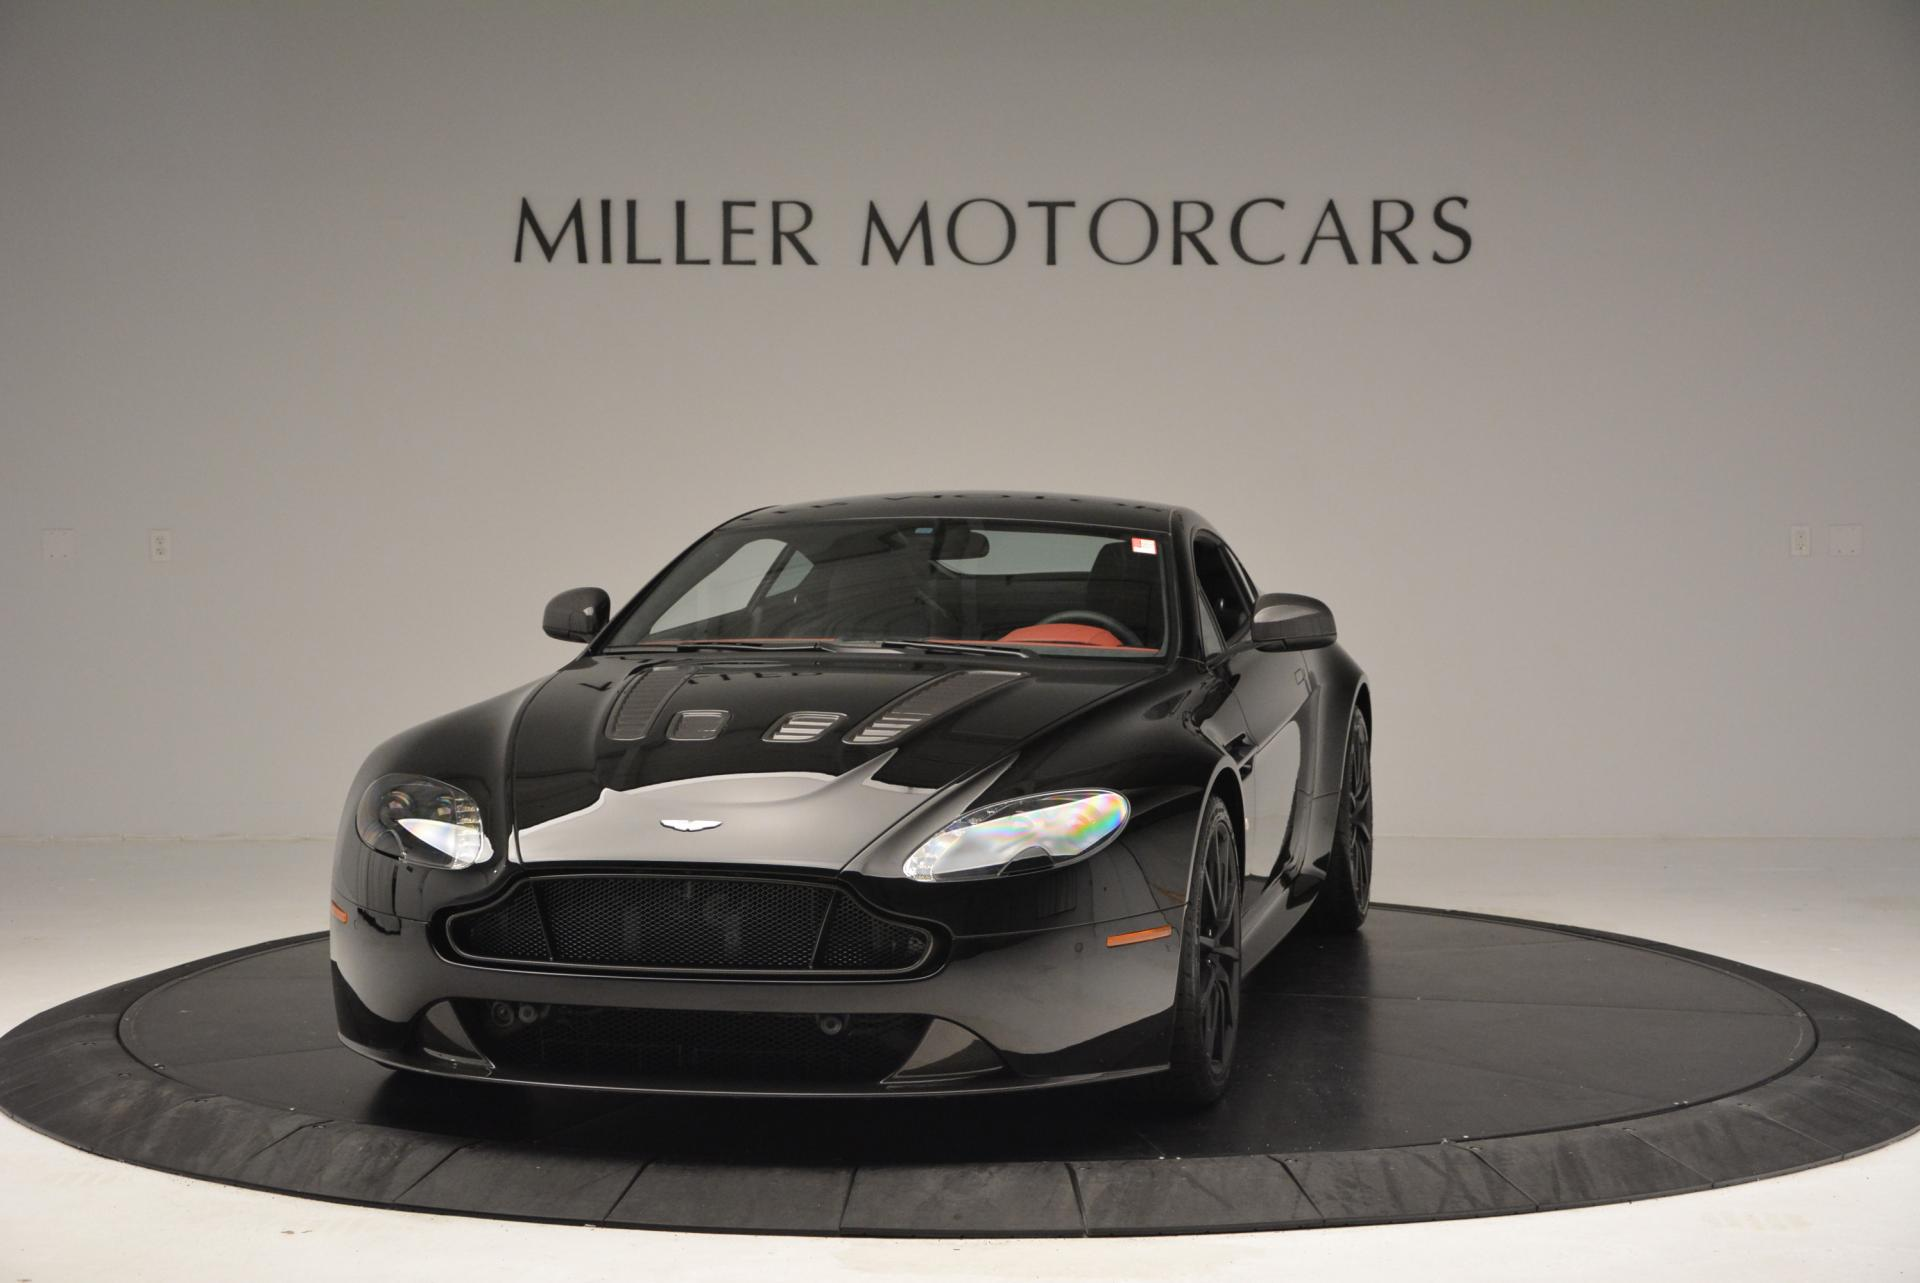 New 2015 Aston Martin V12 Vantage S for sale Sold at Maserati of Westport in Westport CT 06880 1